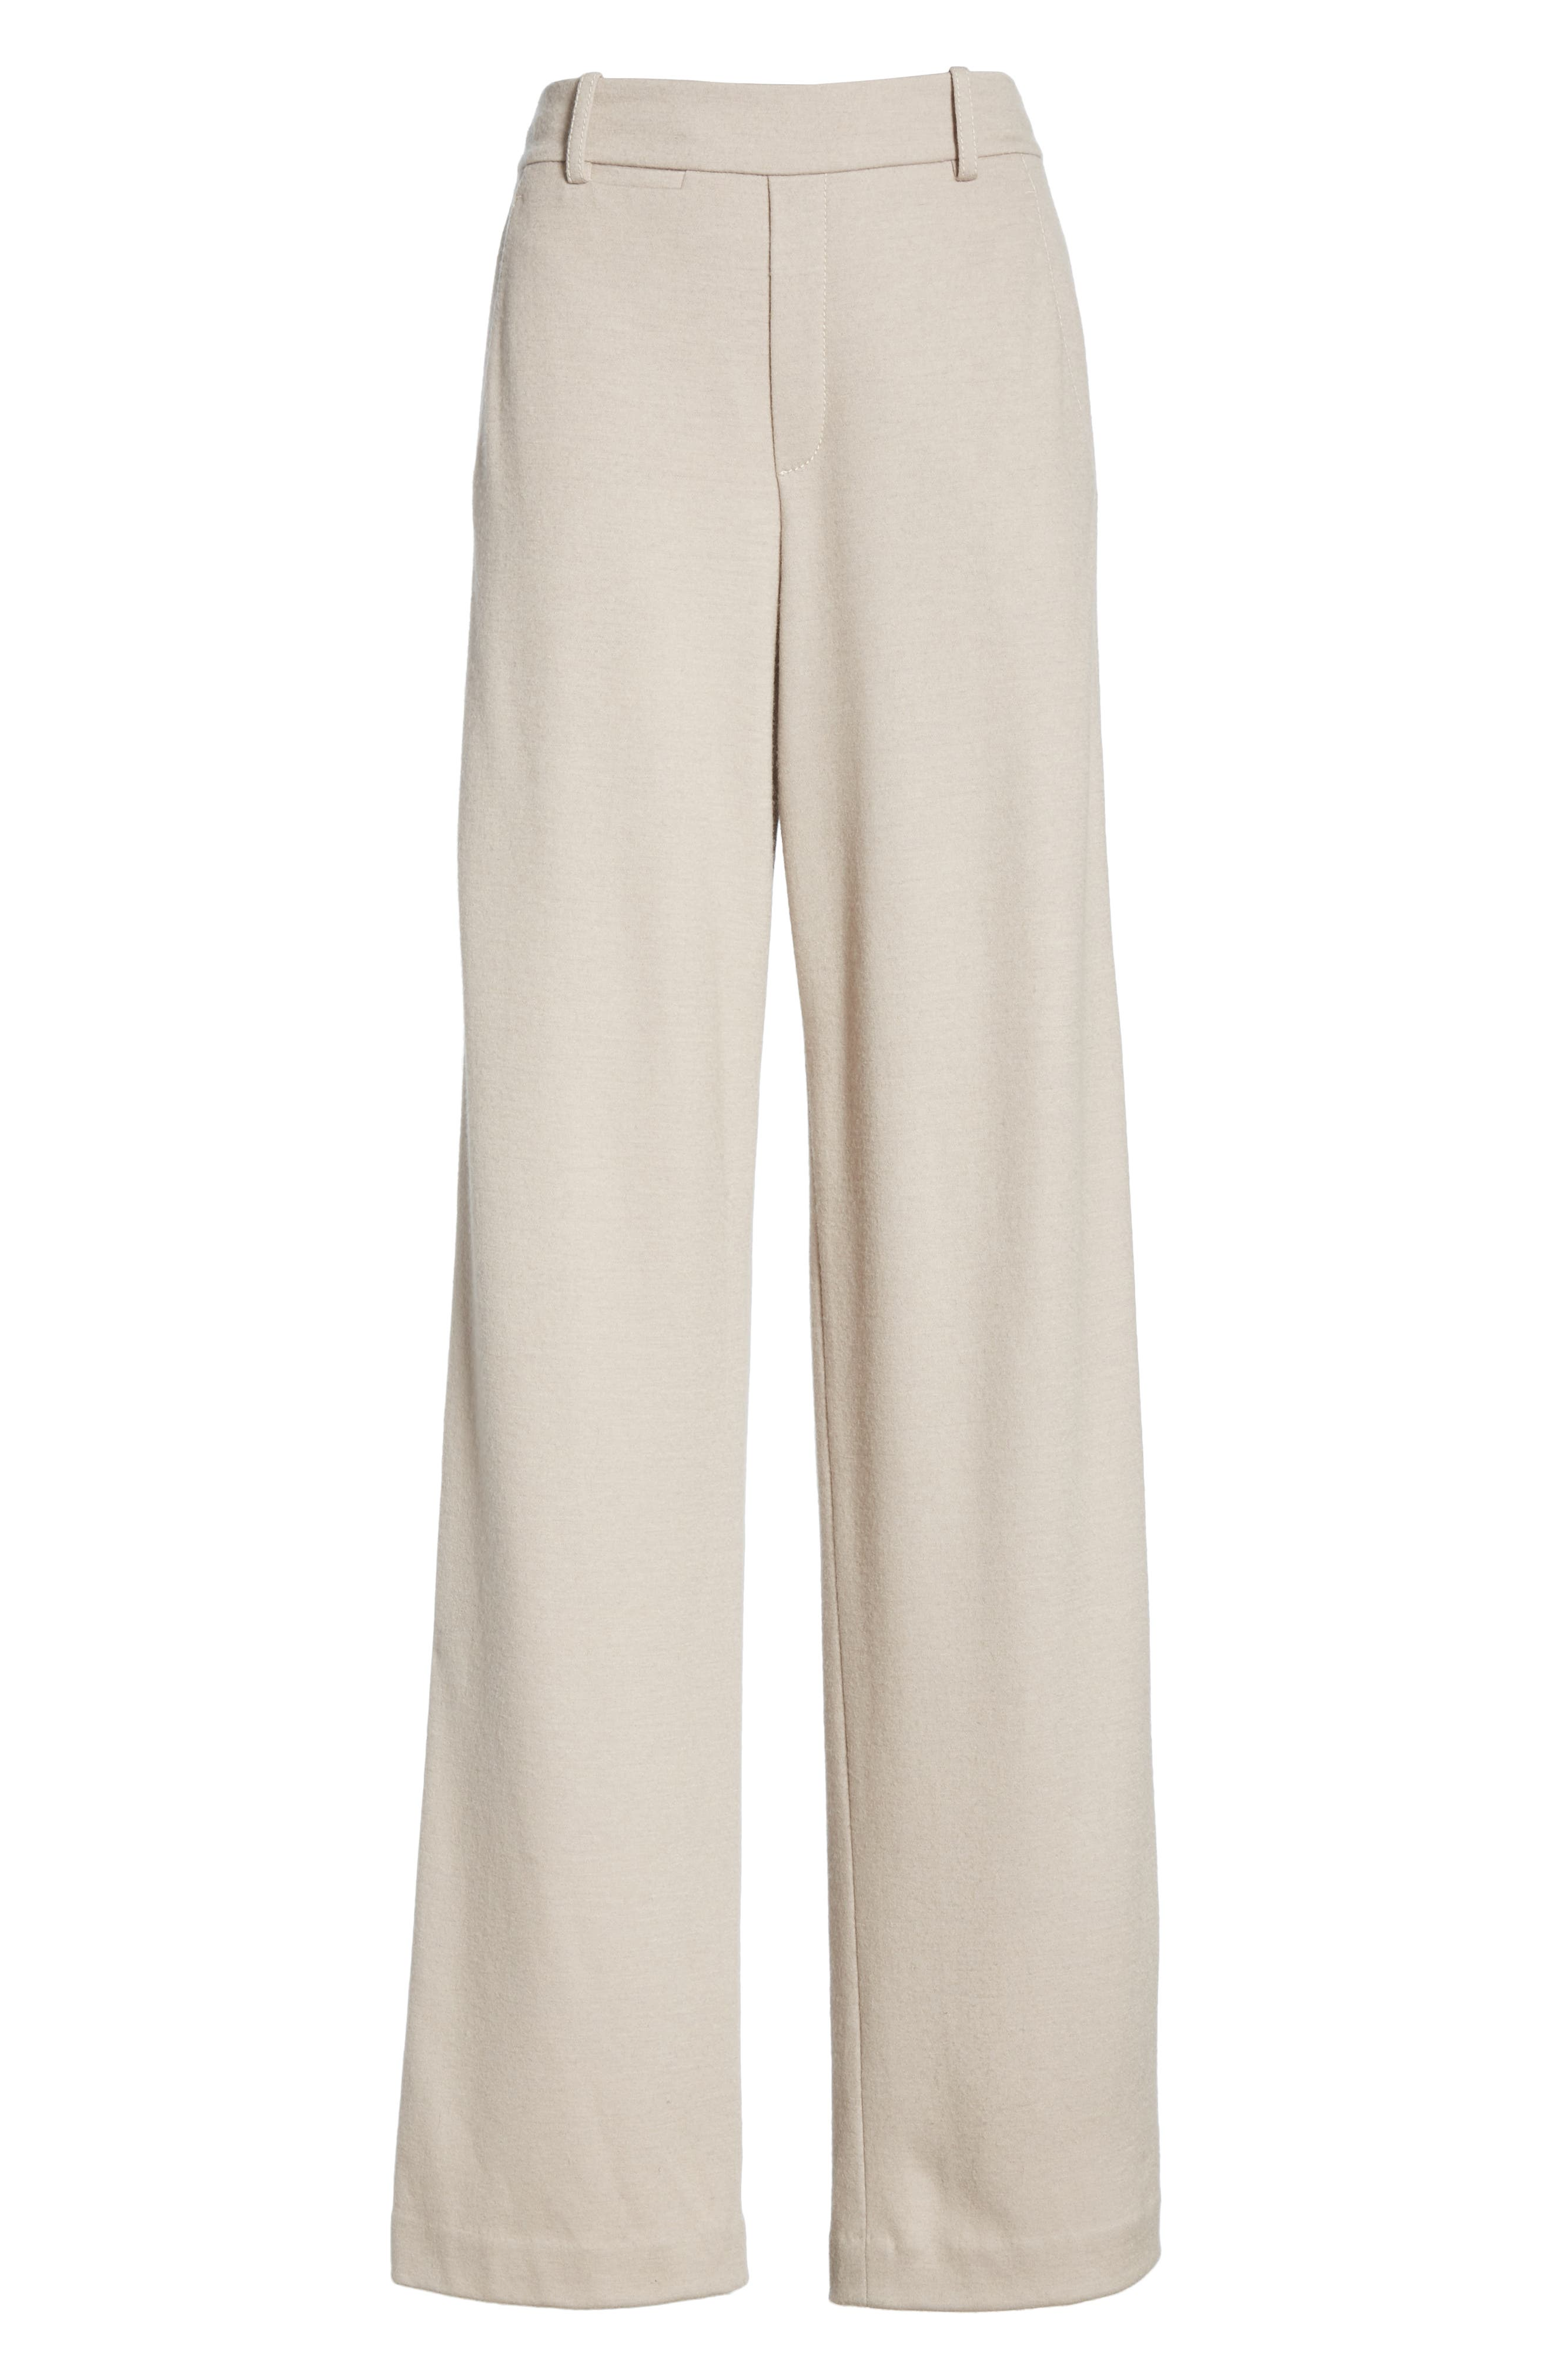 VINCE, Cozy Wide Leg Pants, Alternate thumbnail 7, color, MARBLE